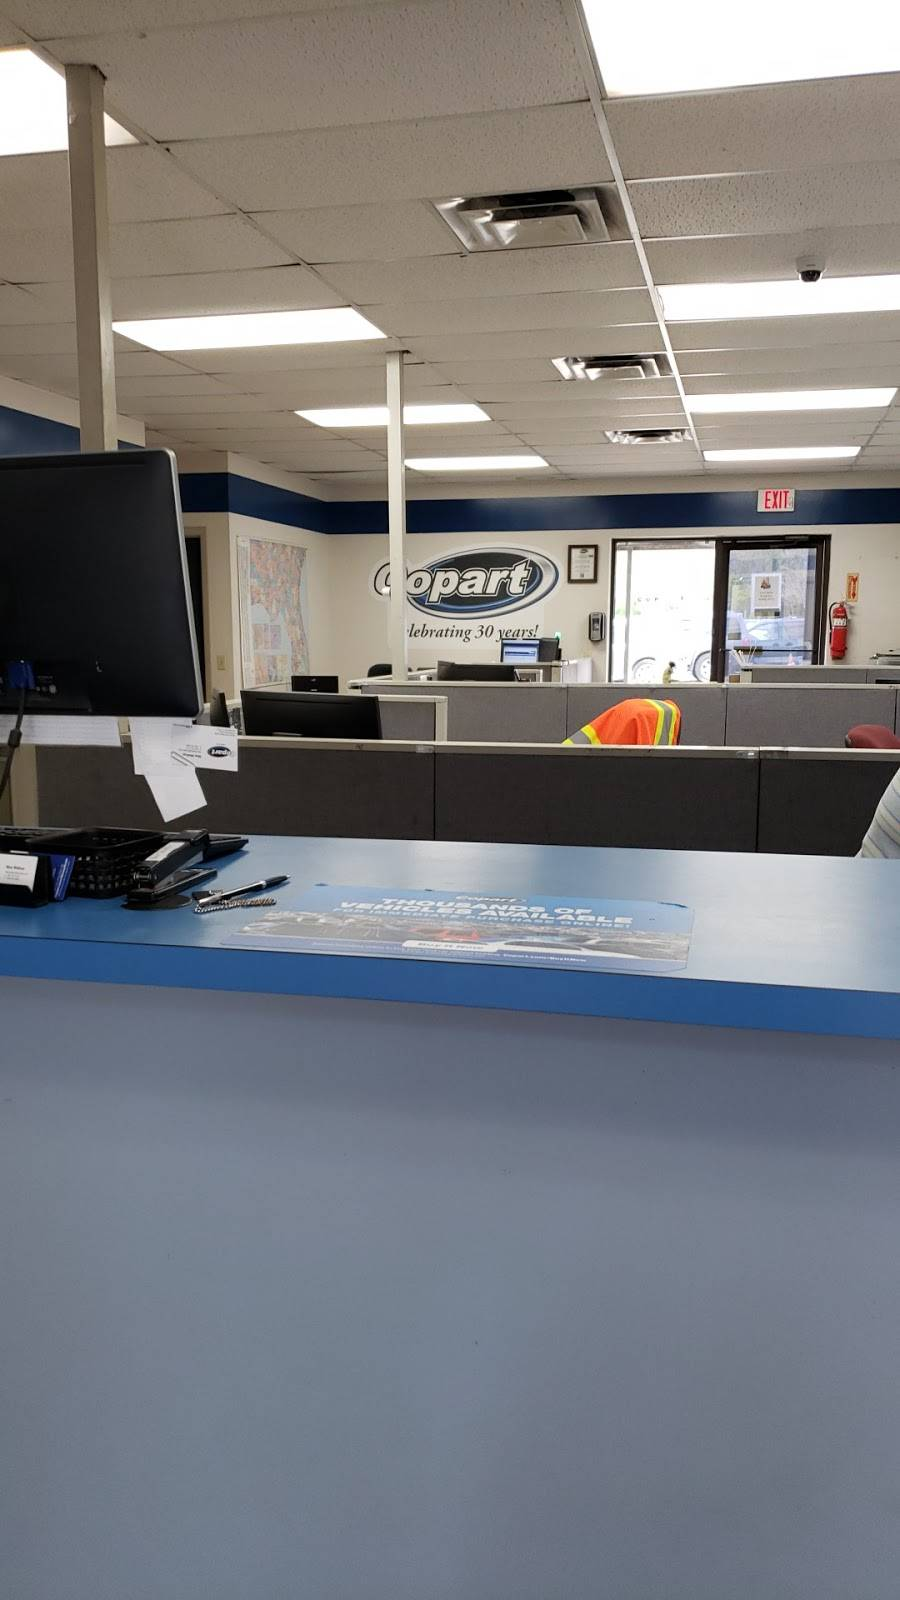 Copart - Jacksonville West - car dealer  | Photo 6 of 10 | Address: 450 Hammond Blvd Building 1, Jacksonville, FL 32220, USA | Phone: (904) 781-3141